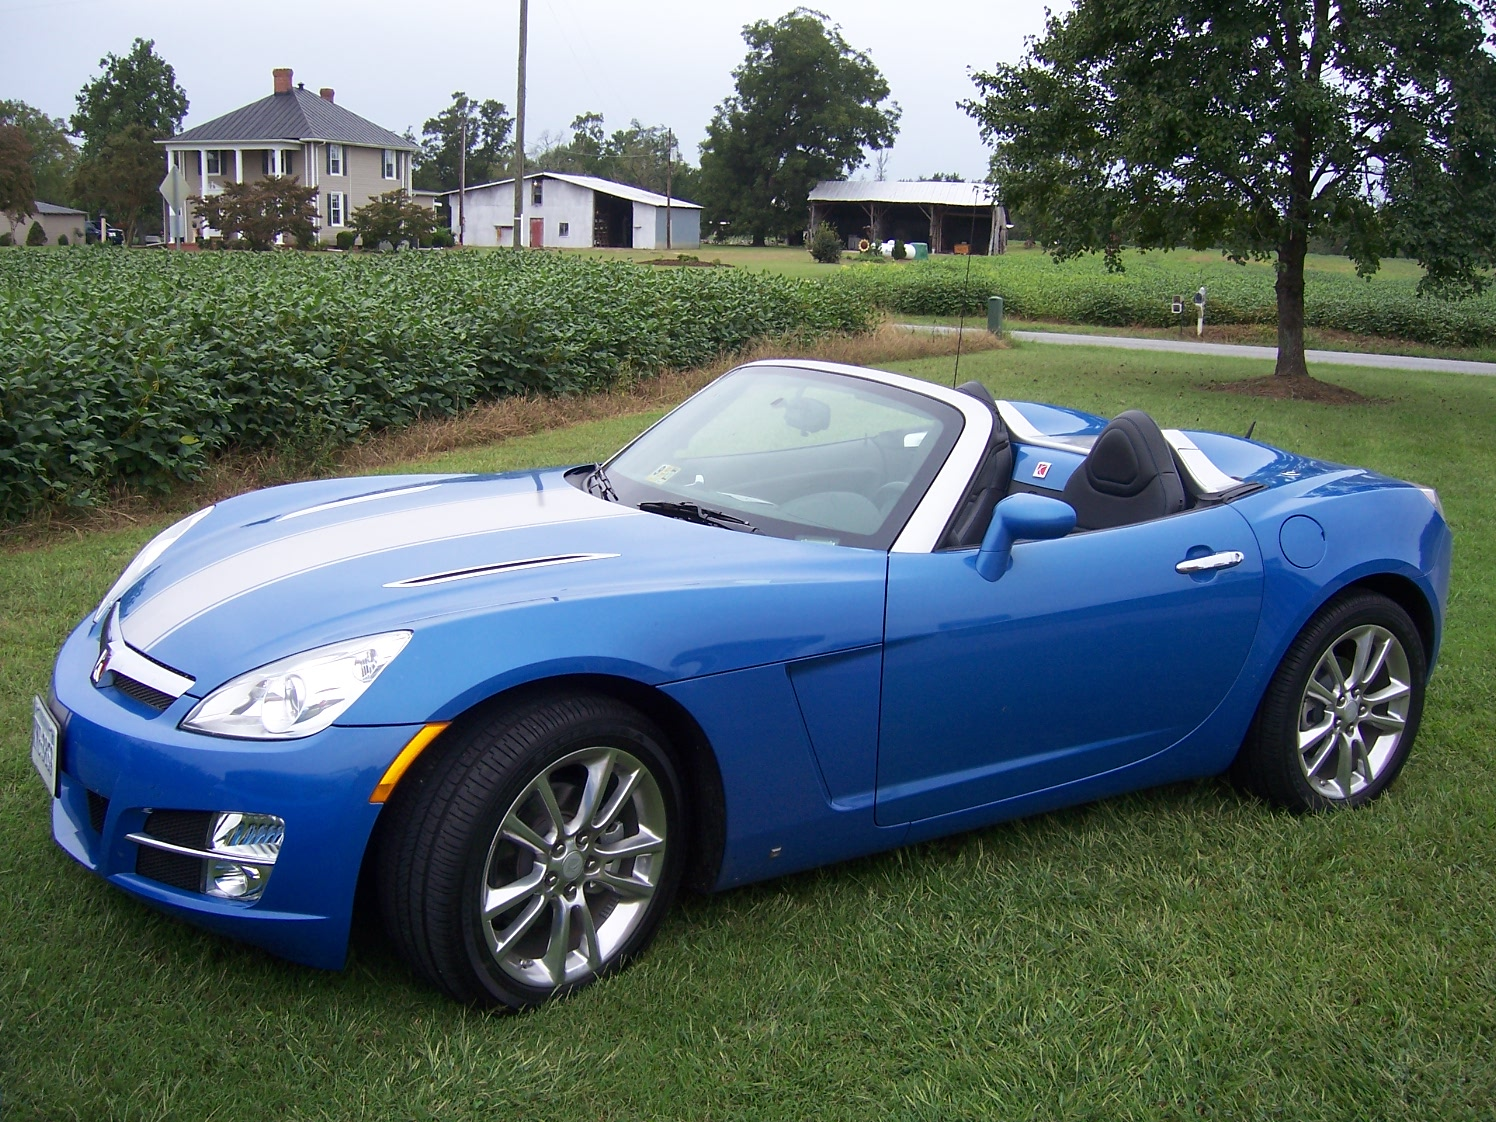 Hydro blue 2009 limited edition saturn sky for sale saturn sky forums saturn sky forum